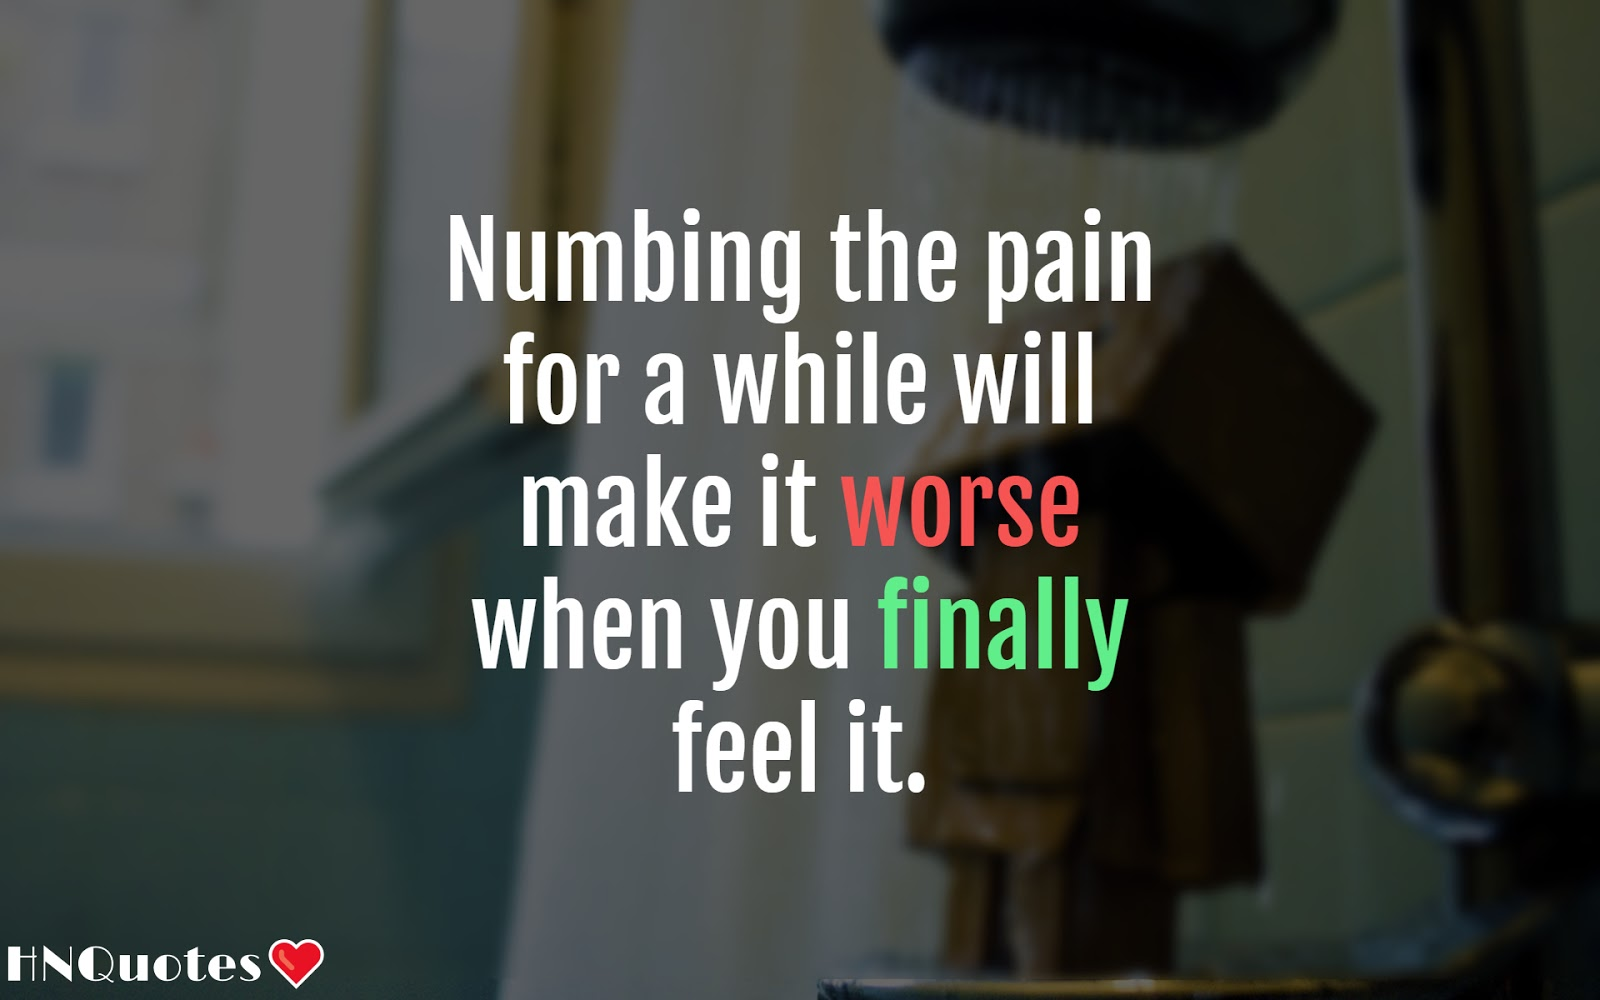 Sad-&-Emotional-Quotes-on-Life-64-Best-Emotional-Quotes[HNQuotes]